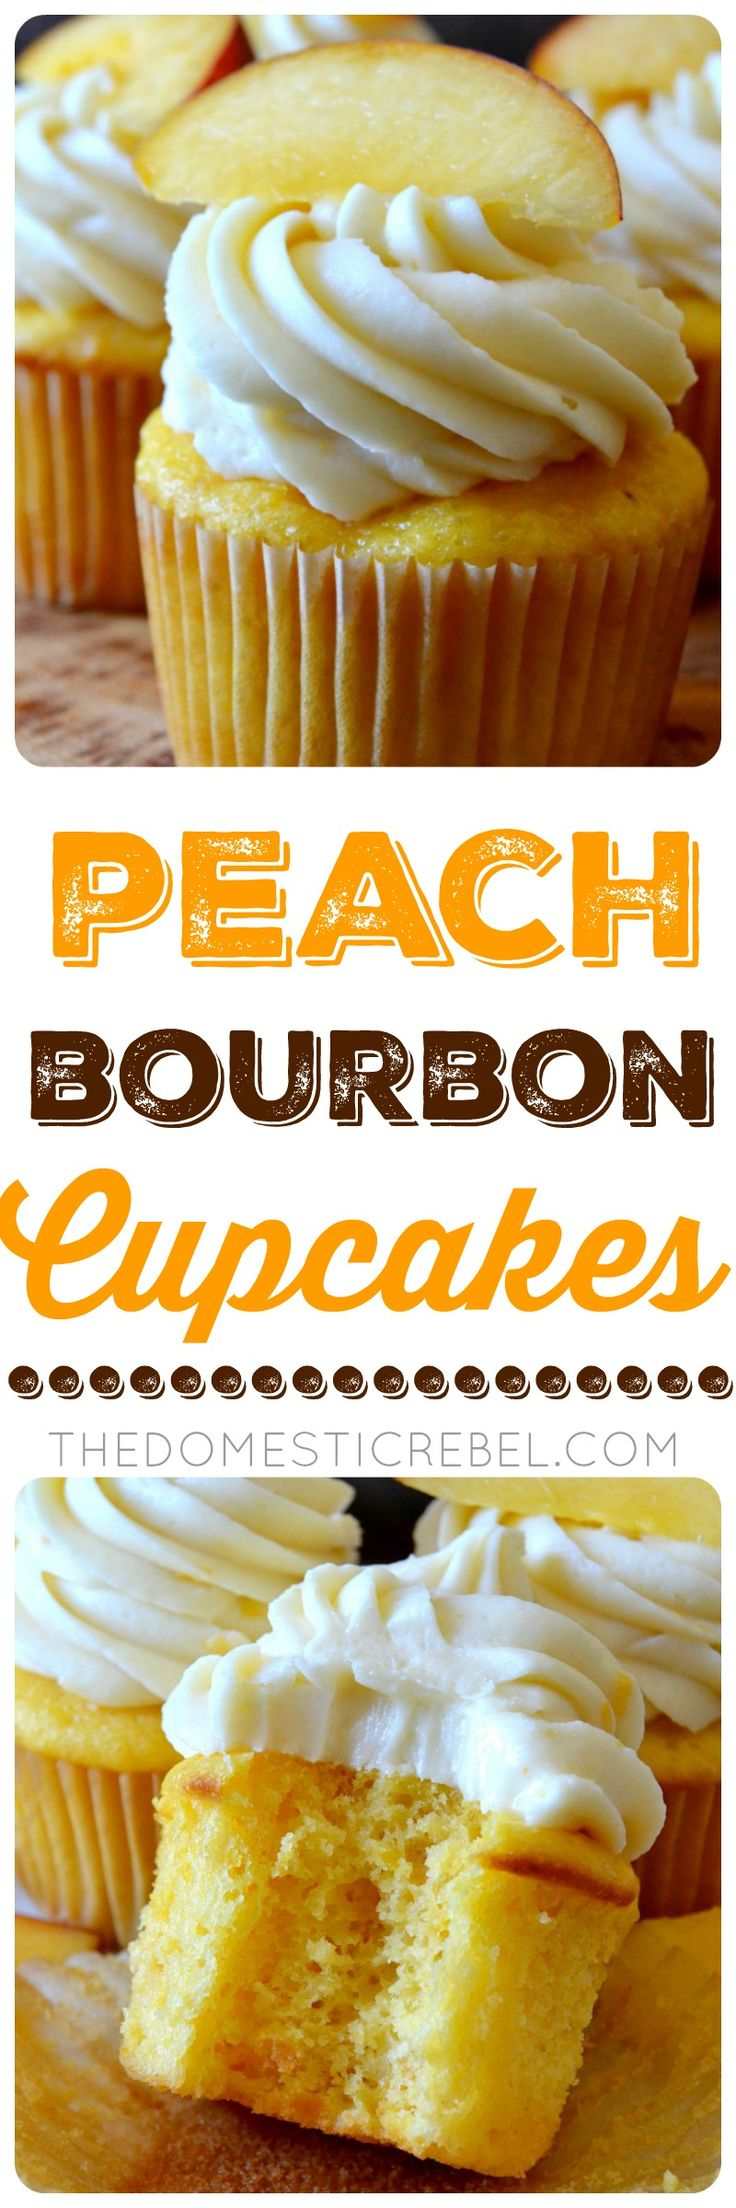 These Peach Bourbon Cupcakes couldn't be easier or more impressive to whip up! Moist and tender peach cupcakes topped with a bourbon-infused real peach buttercream frosting. So great for when peaches are in season and extra ripe!